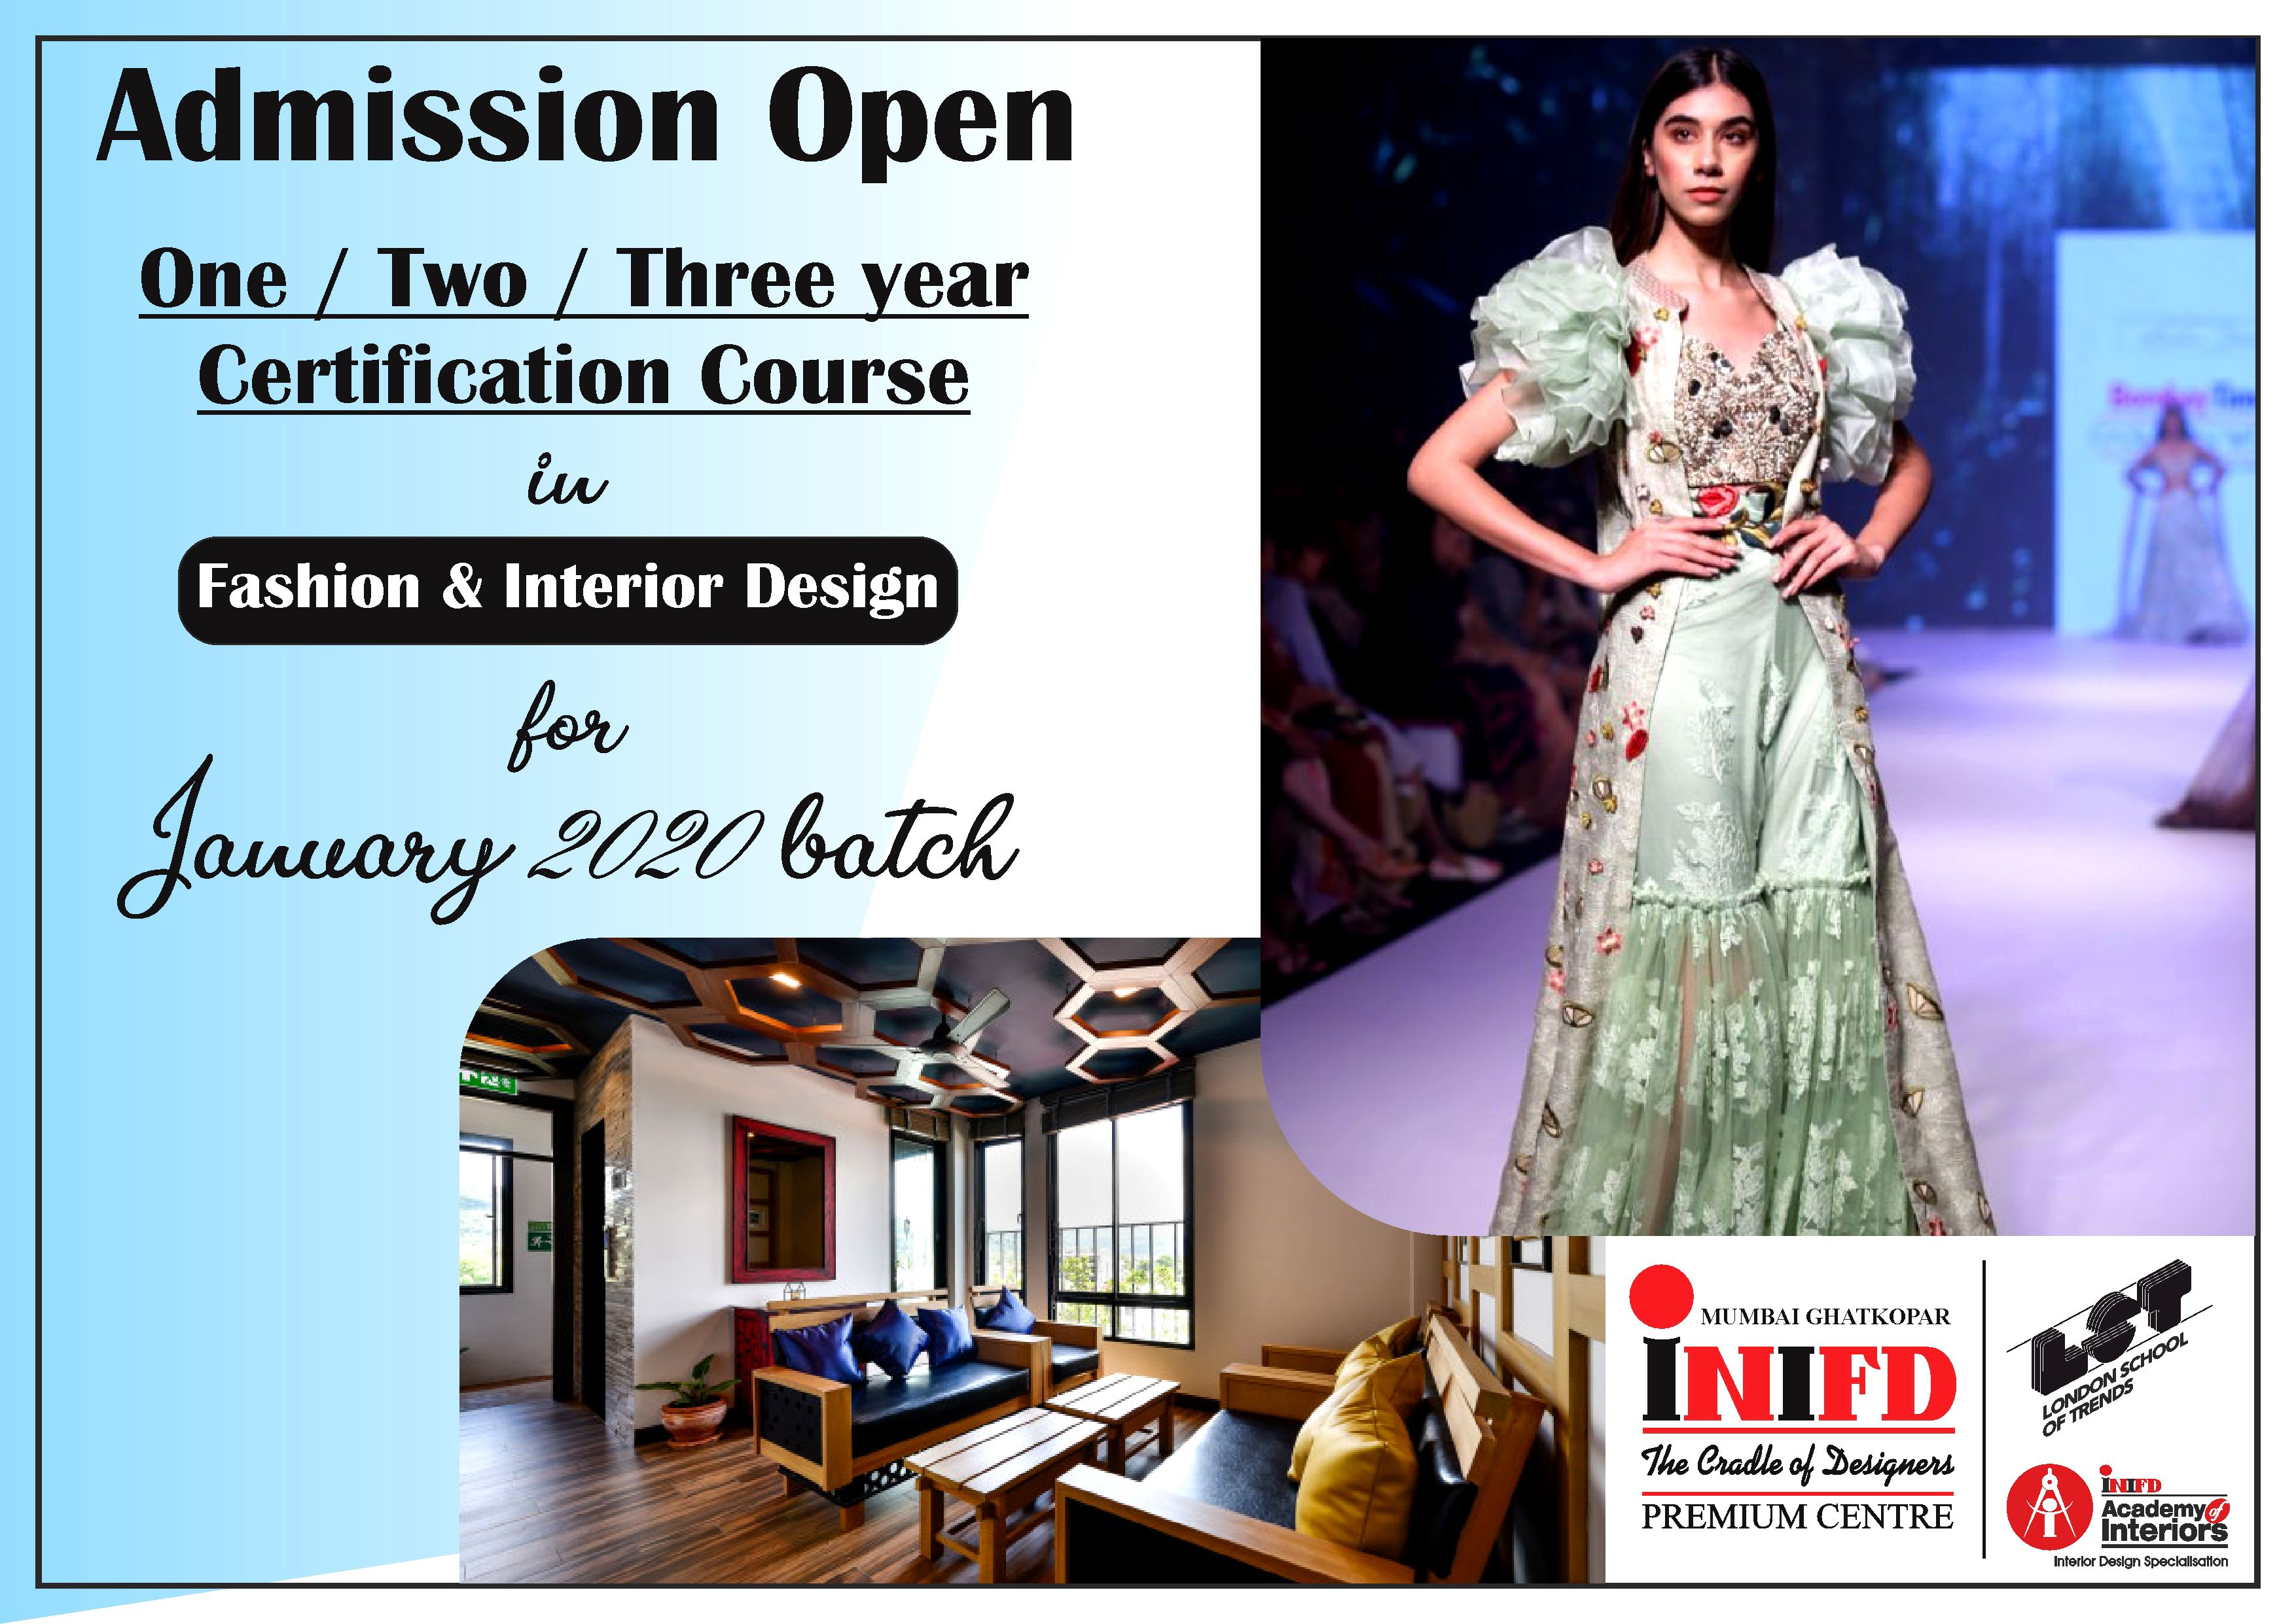 Looking For The Best Designing Institute In Mumbai For Fashion Interior Designing Courses Then Don T Wait Enr Formal Dresses Long Fashion Design Design